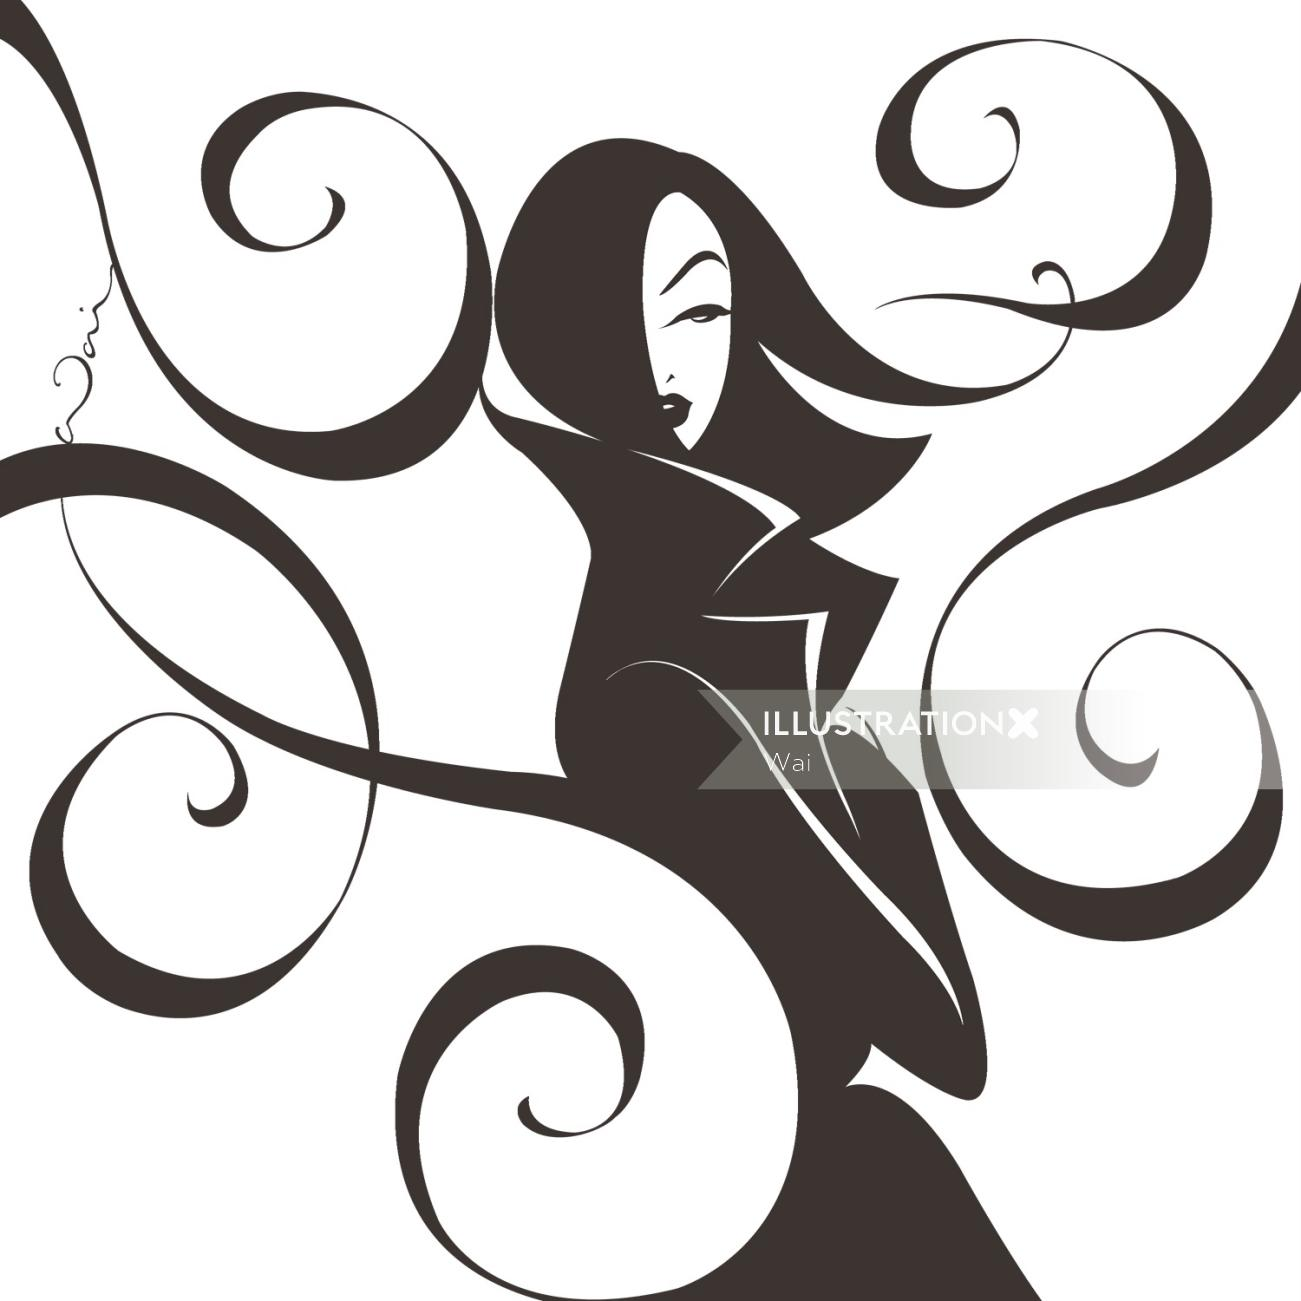 Black and white illustration of woman in a trenchcoat, windy swirls surround her.